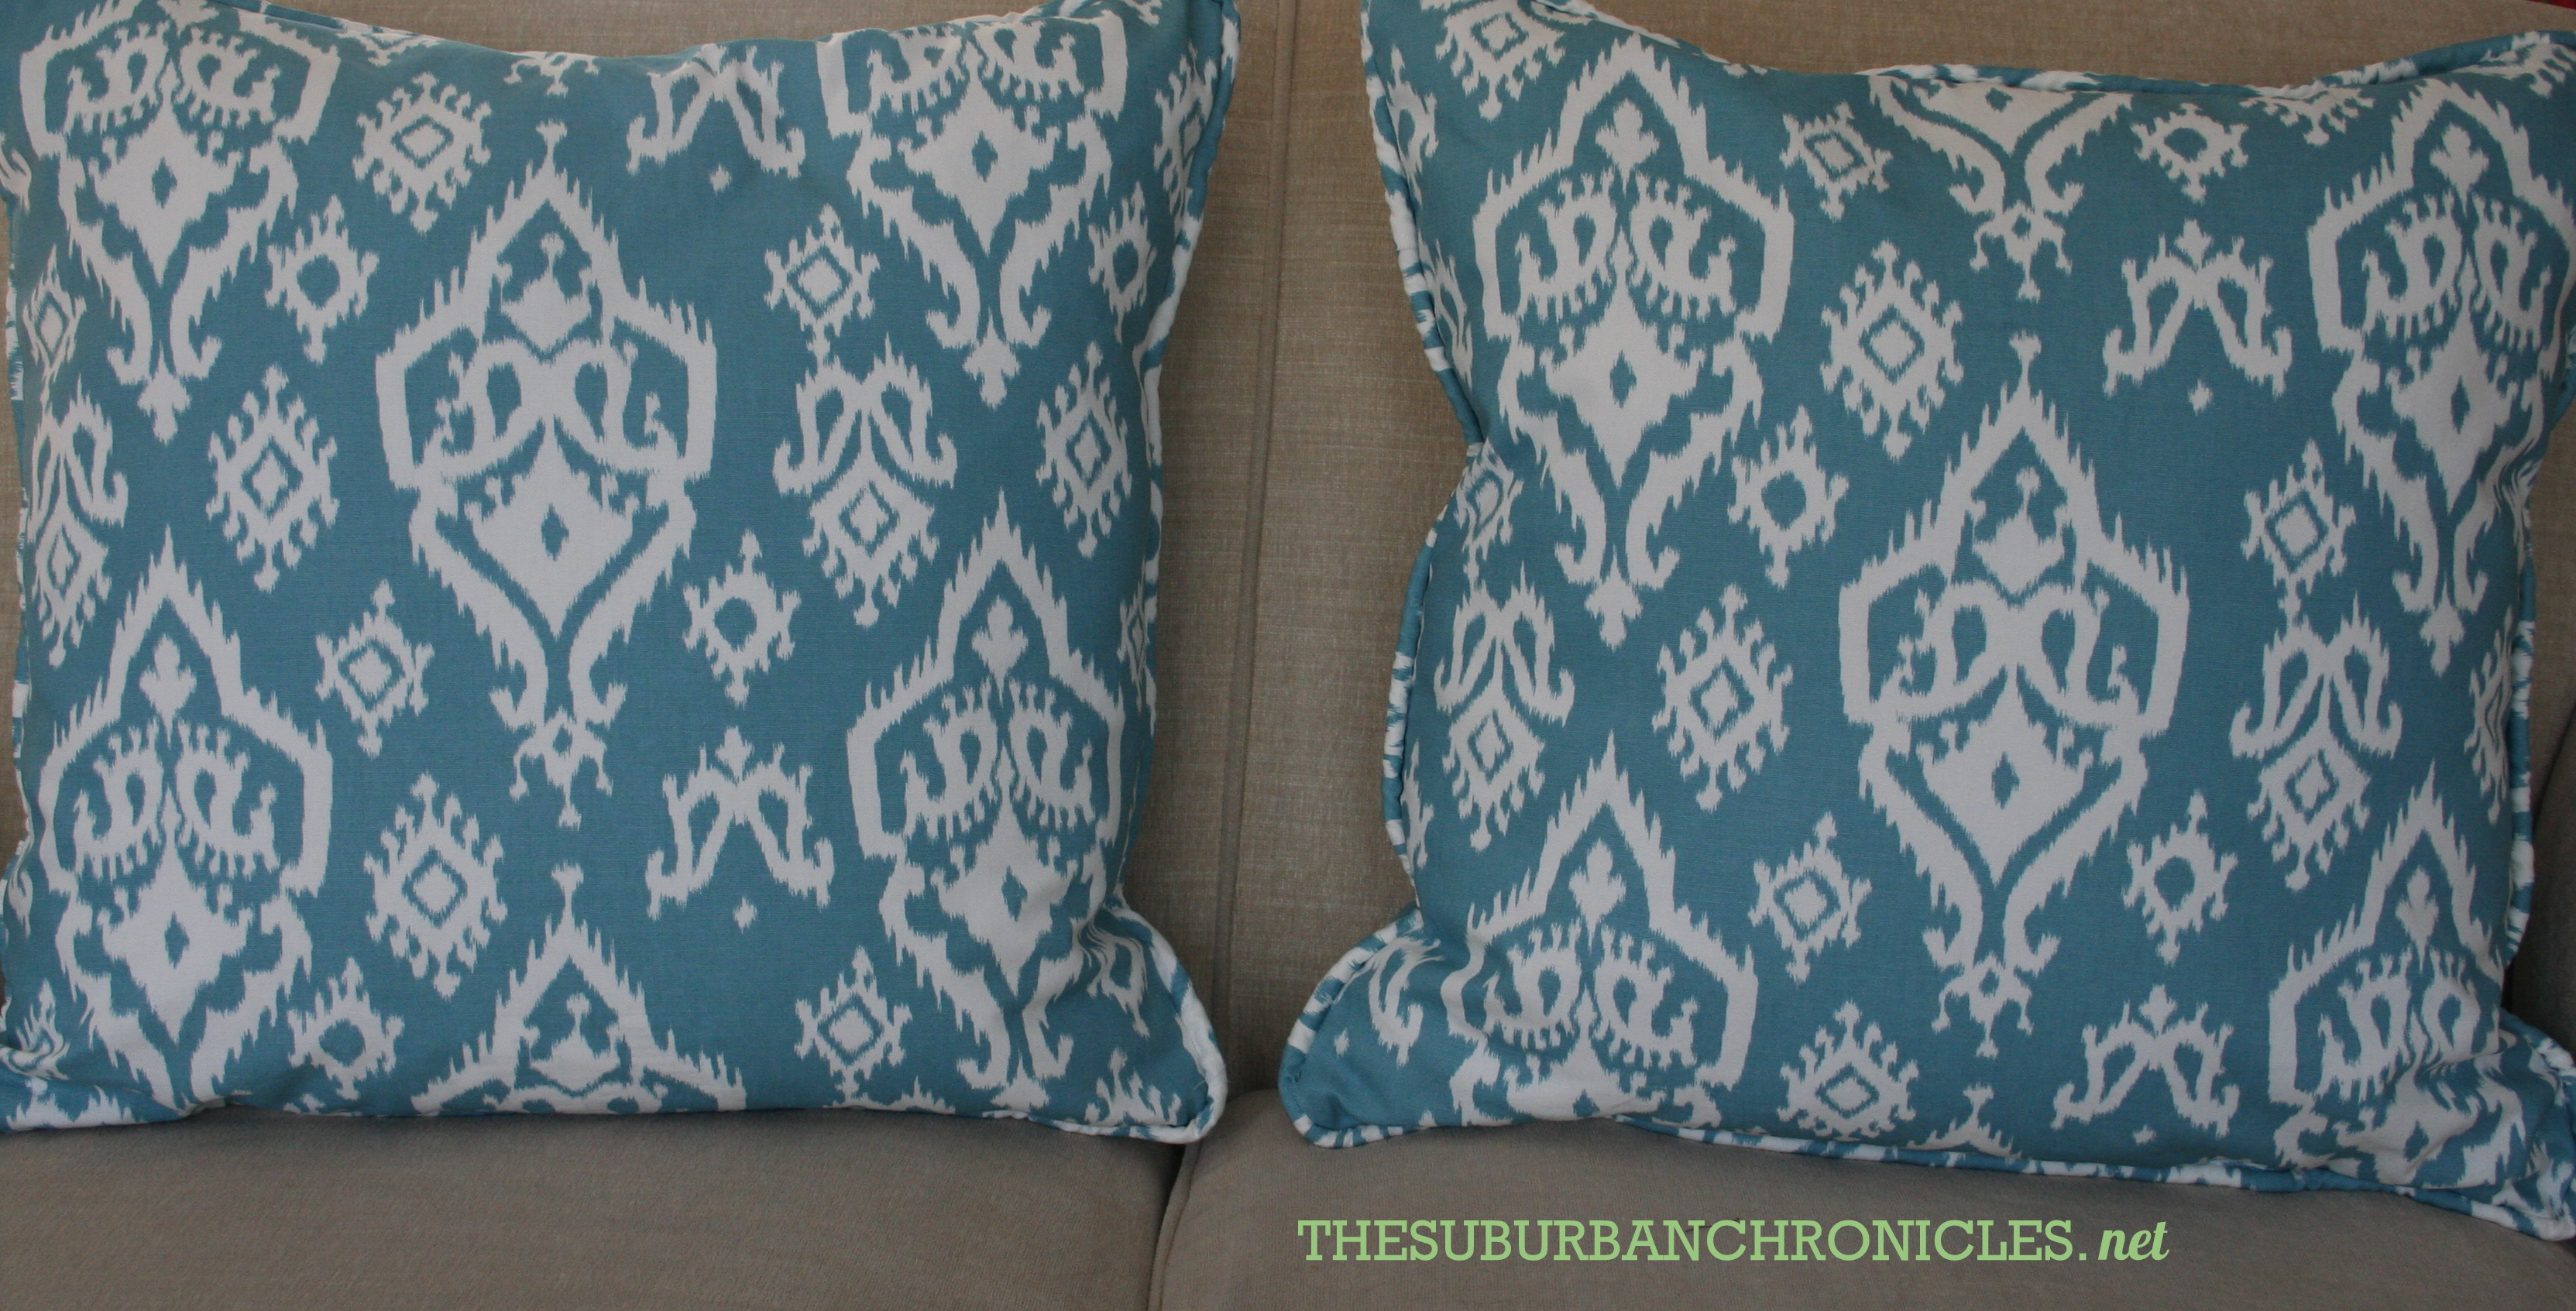 Sewing Throw Pillow With Zipper And Piping : Sewing: Make Pillows With Zippers + Piping - The Suburban Chronicles